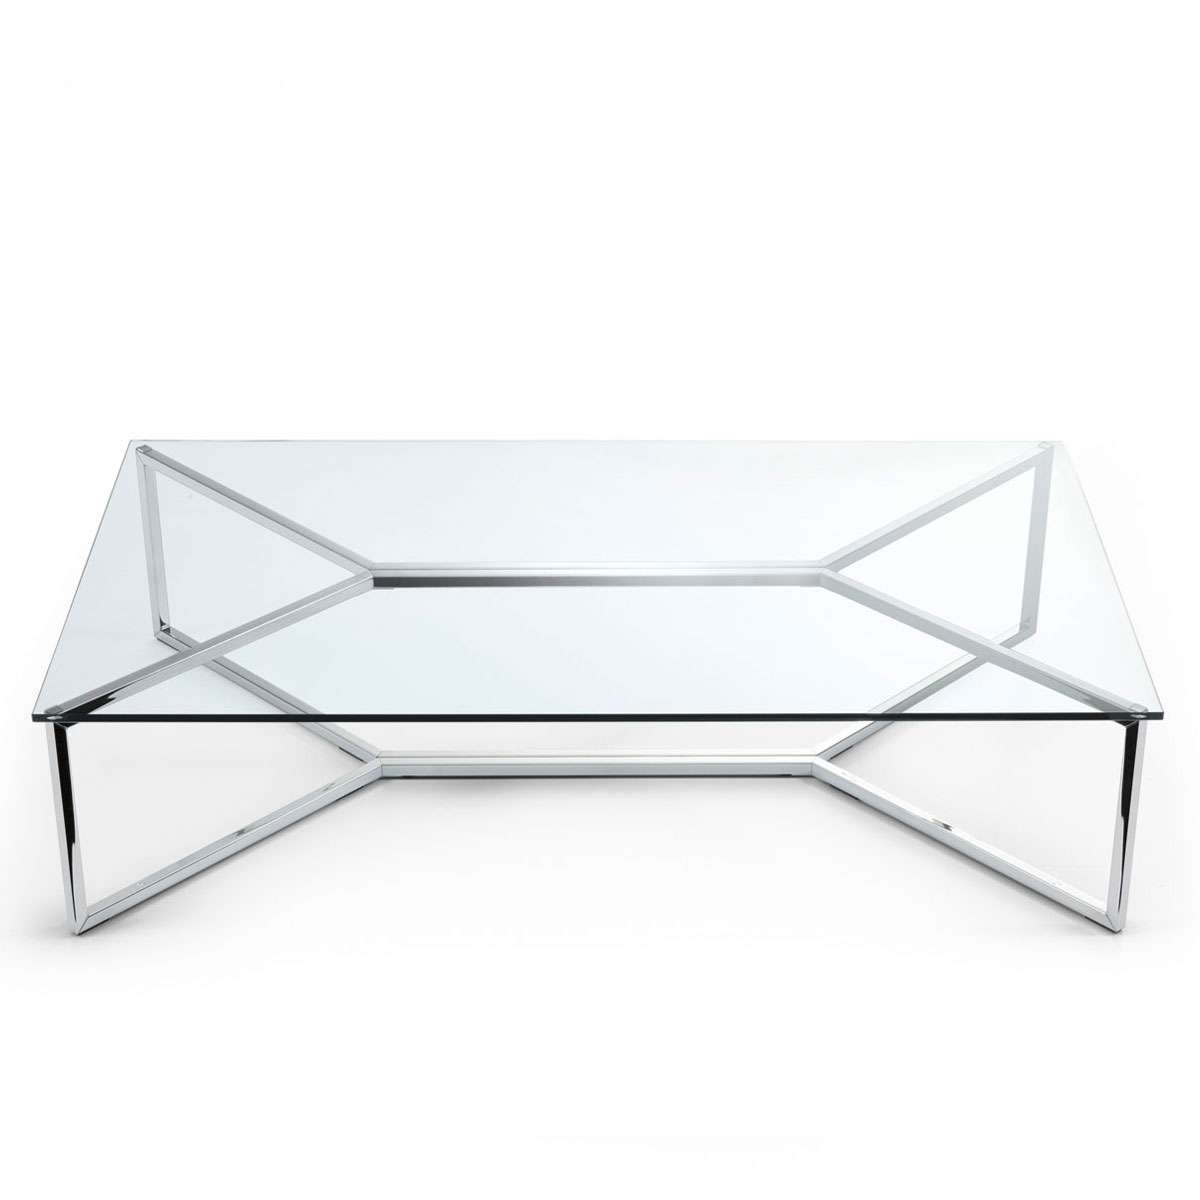 Most Recent Glass And Metal Coffee Tables With Regard To Stylized Metal Coffee Table Legs Metal Coffee Table Legs Zab (View 16 of 20)